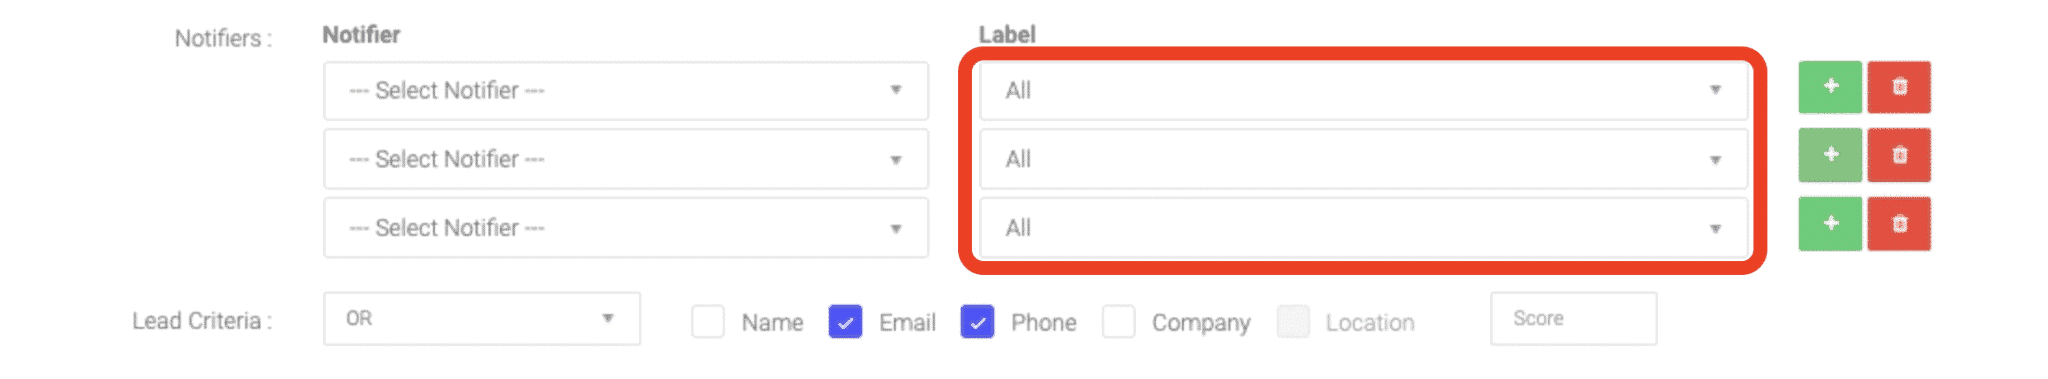 control lead notifications with labels